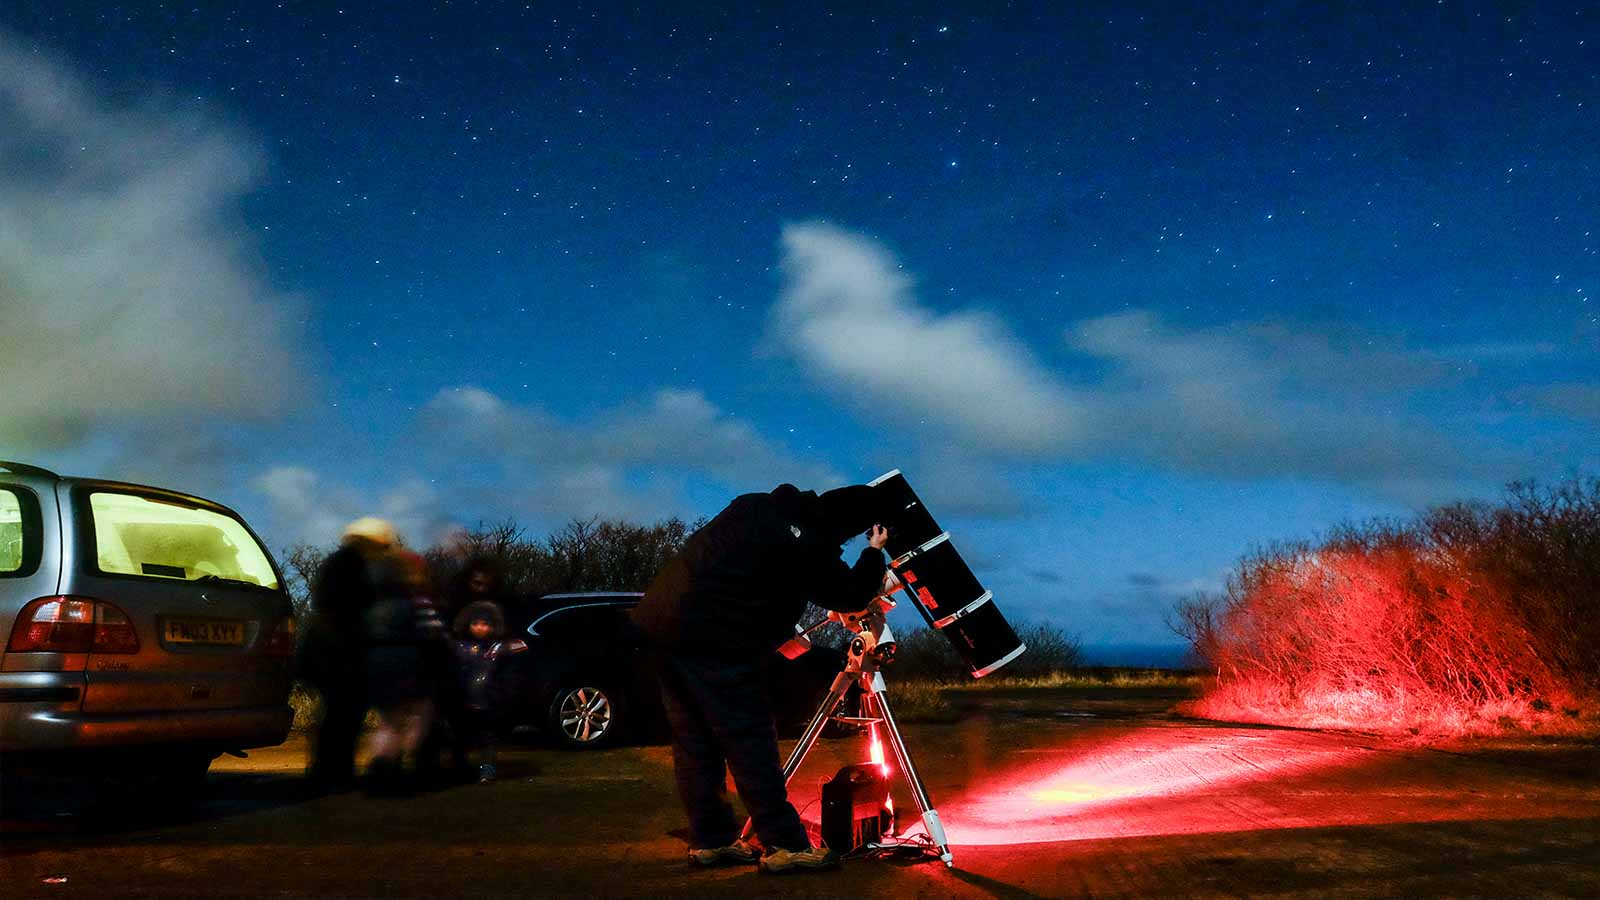 star-gazing-in-the-north-york-moors-national-park